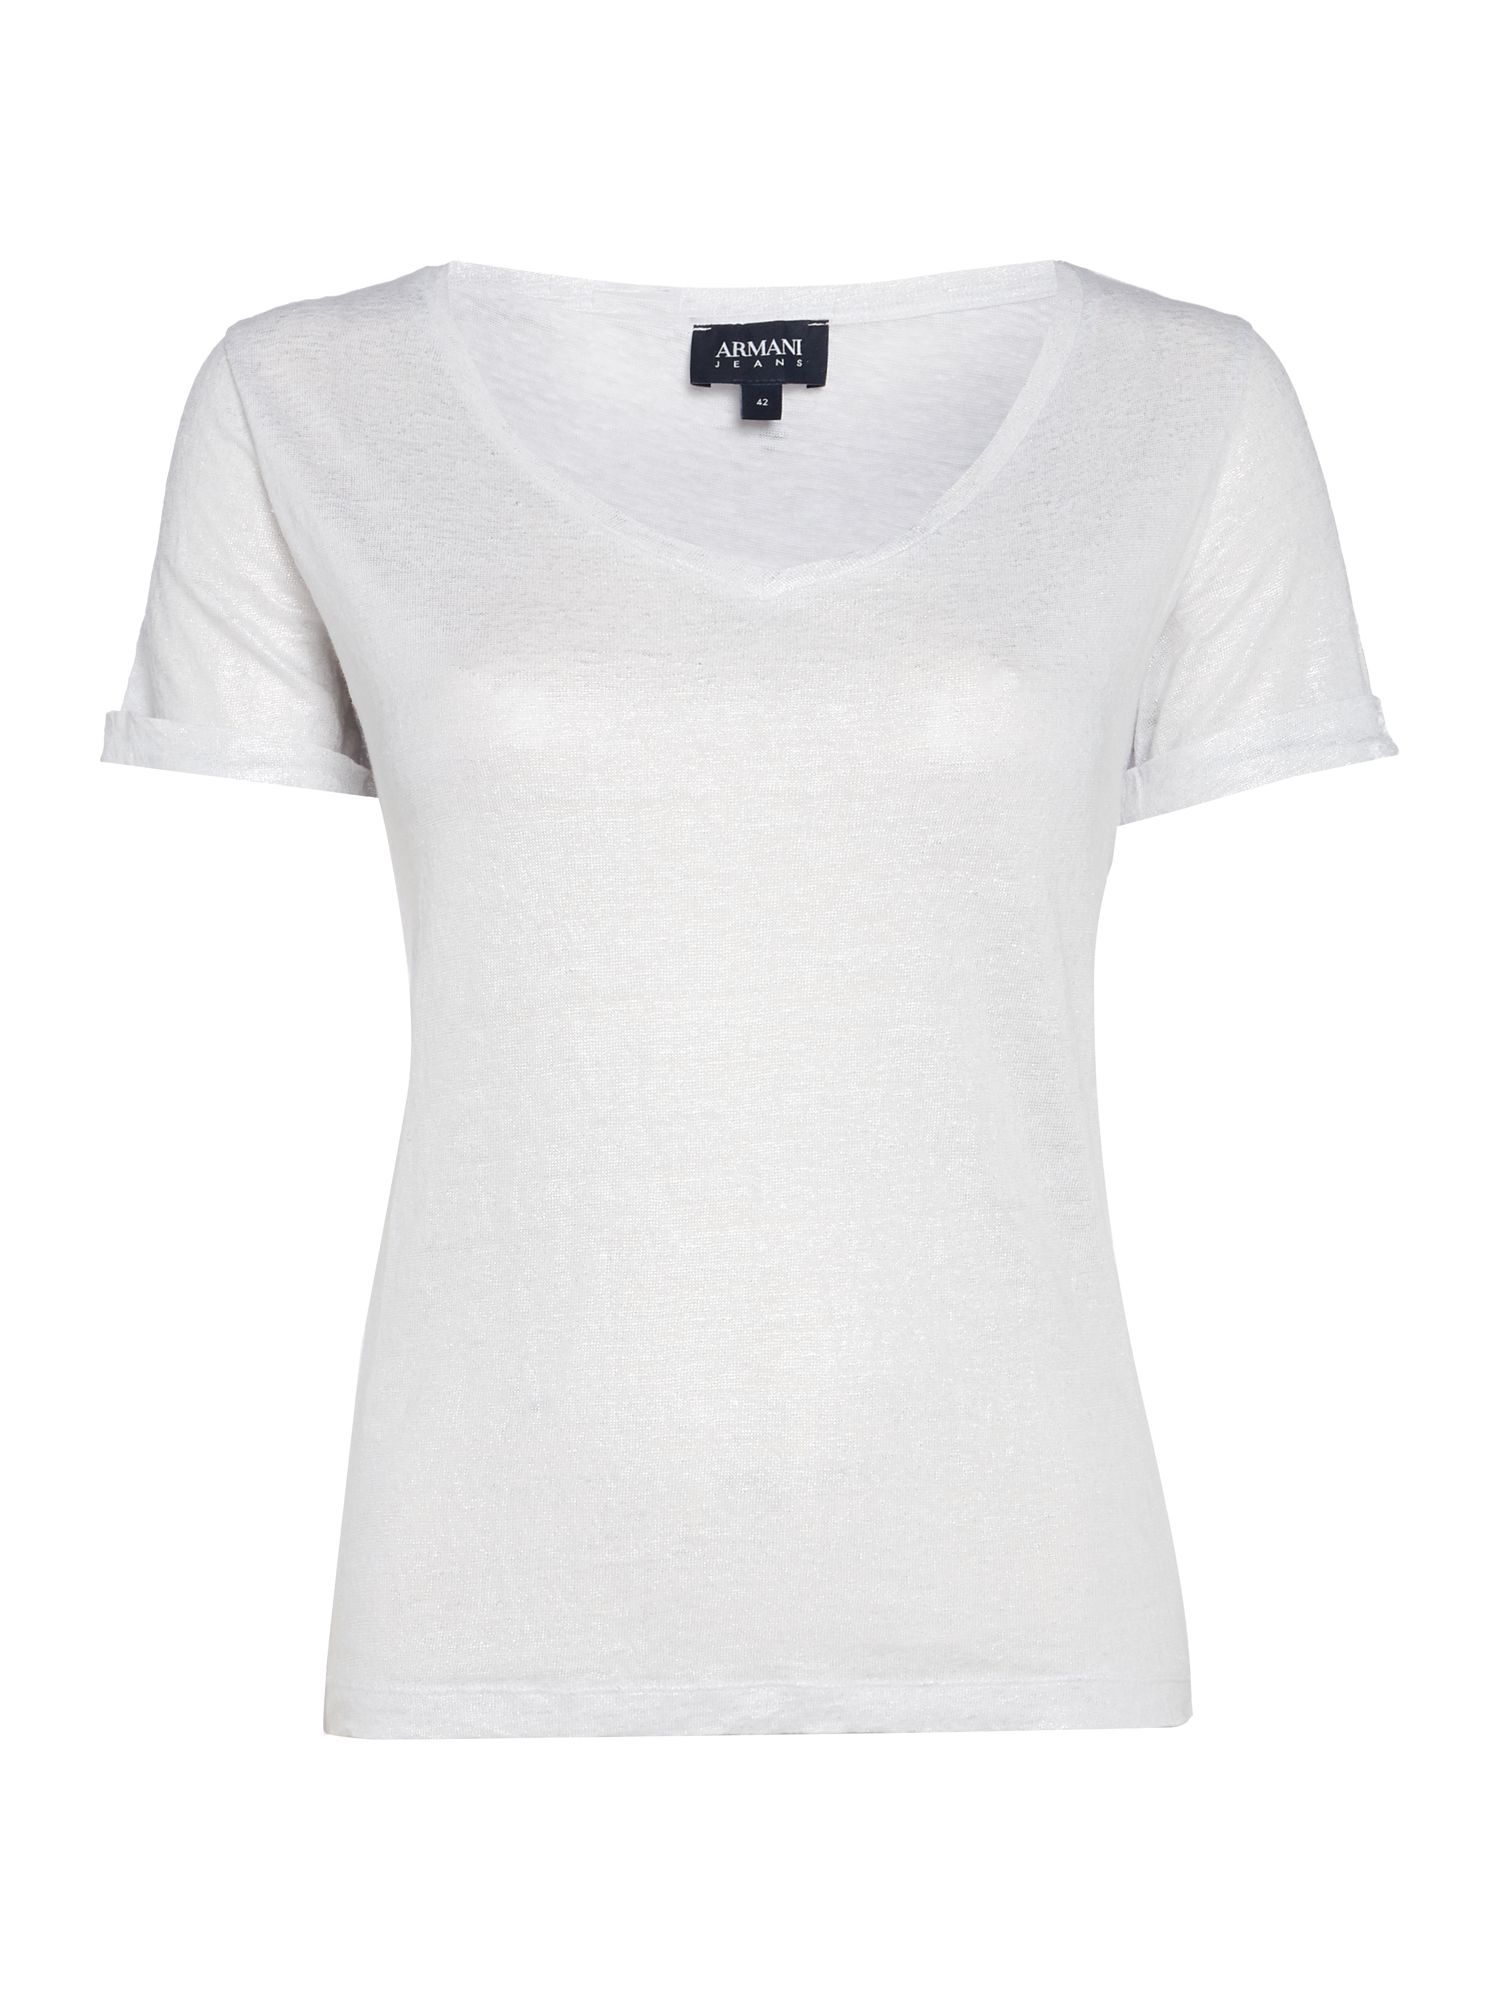 Armani Jeans V Neck Tee in Bianco, White